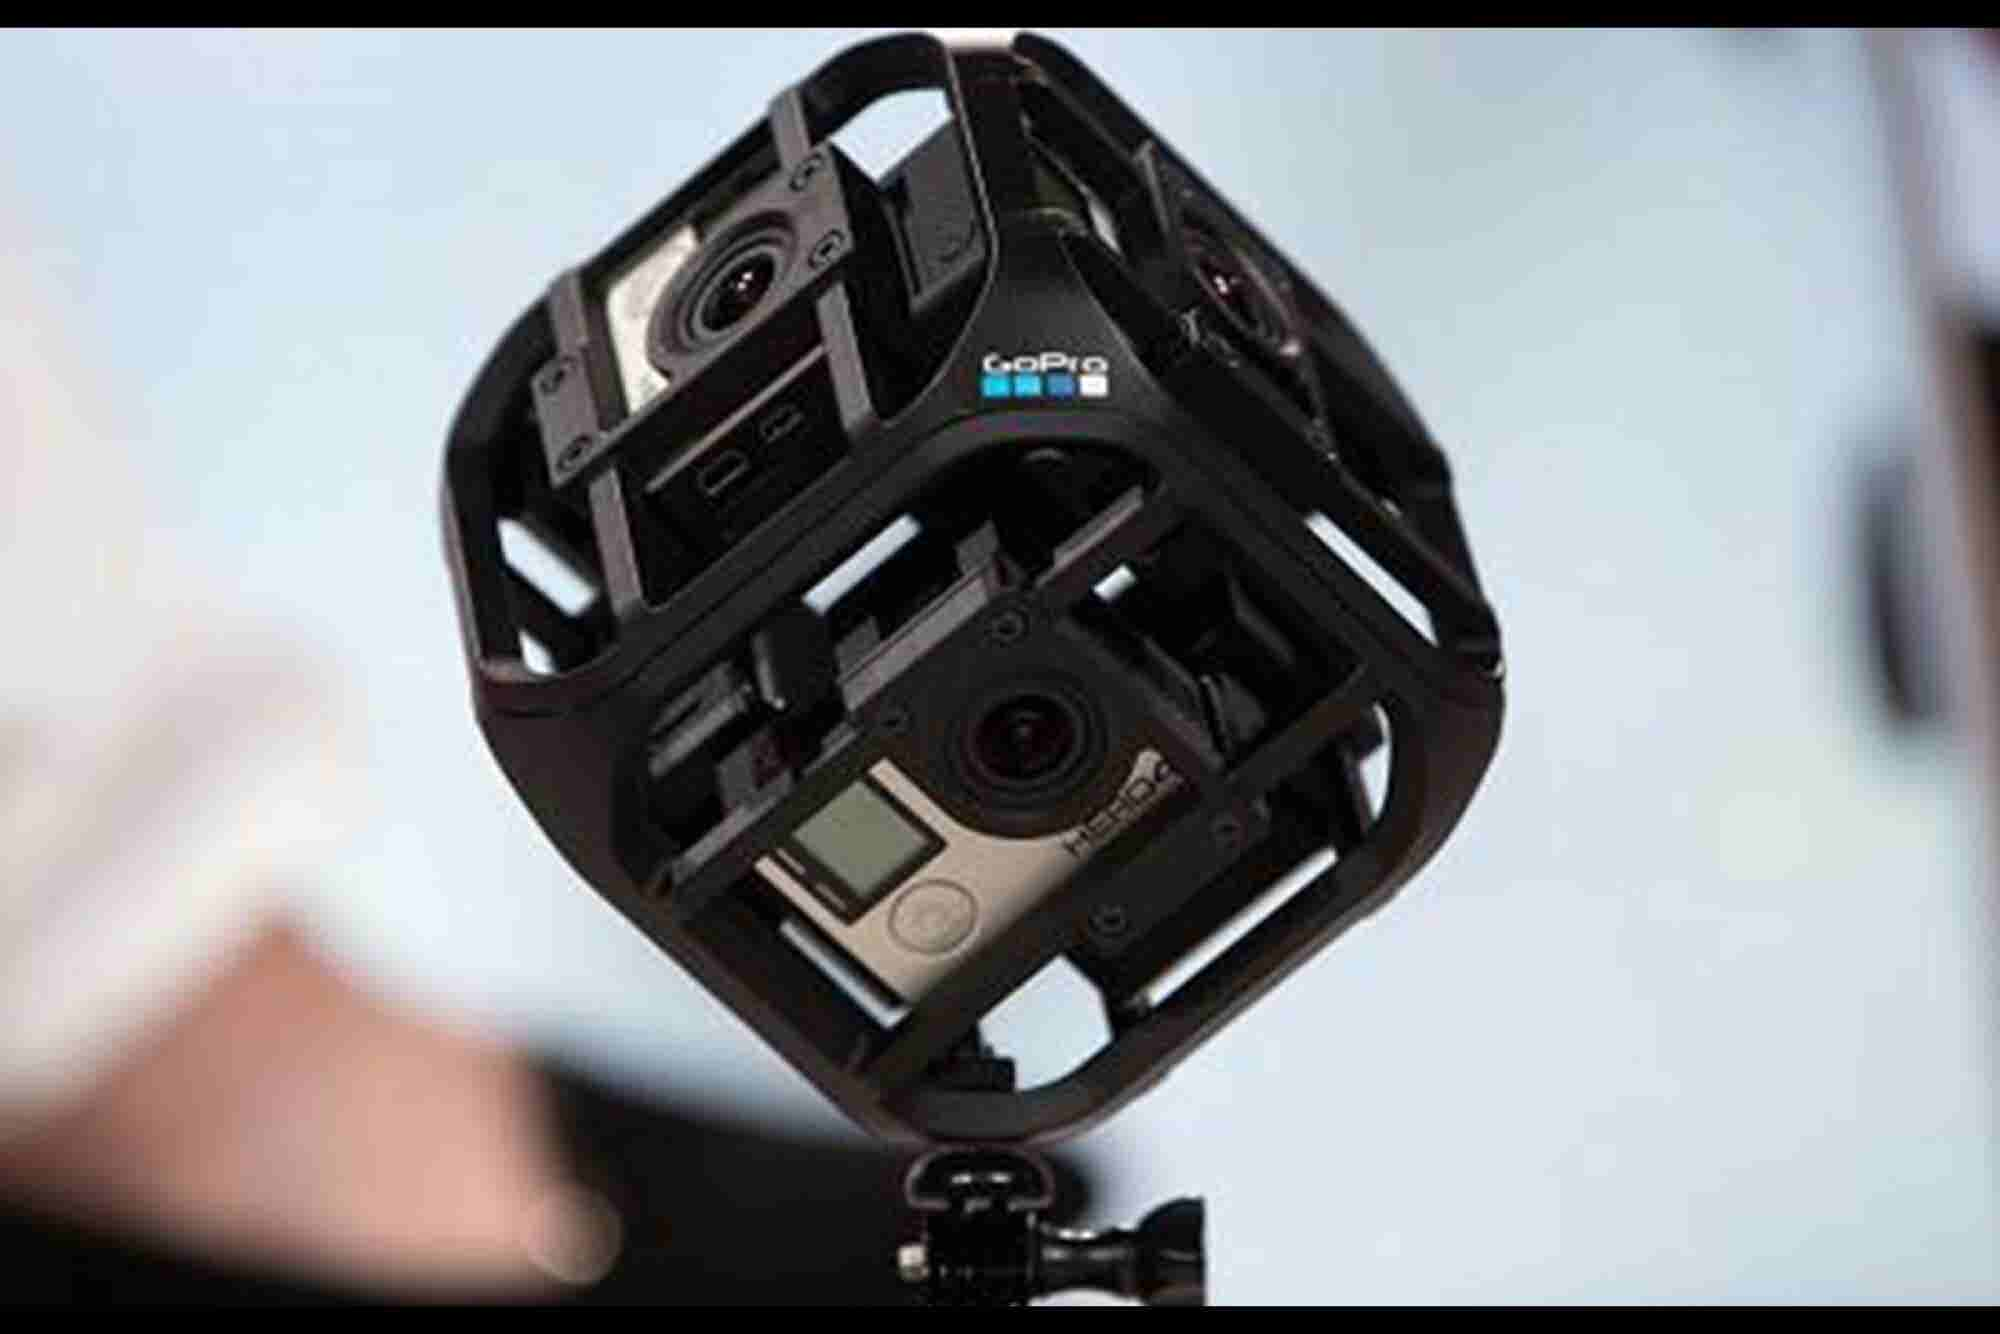 GoPro Goes VR, Snapchat CEO Wants to IPO: Your Weekly News